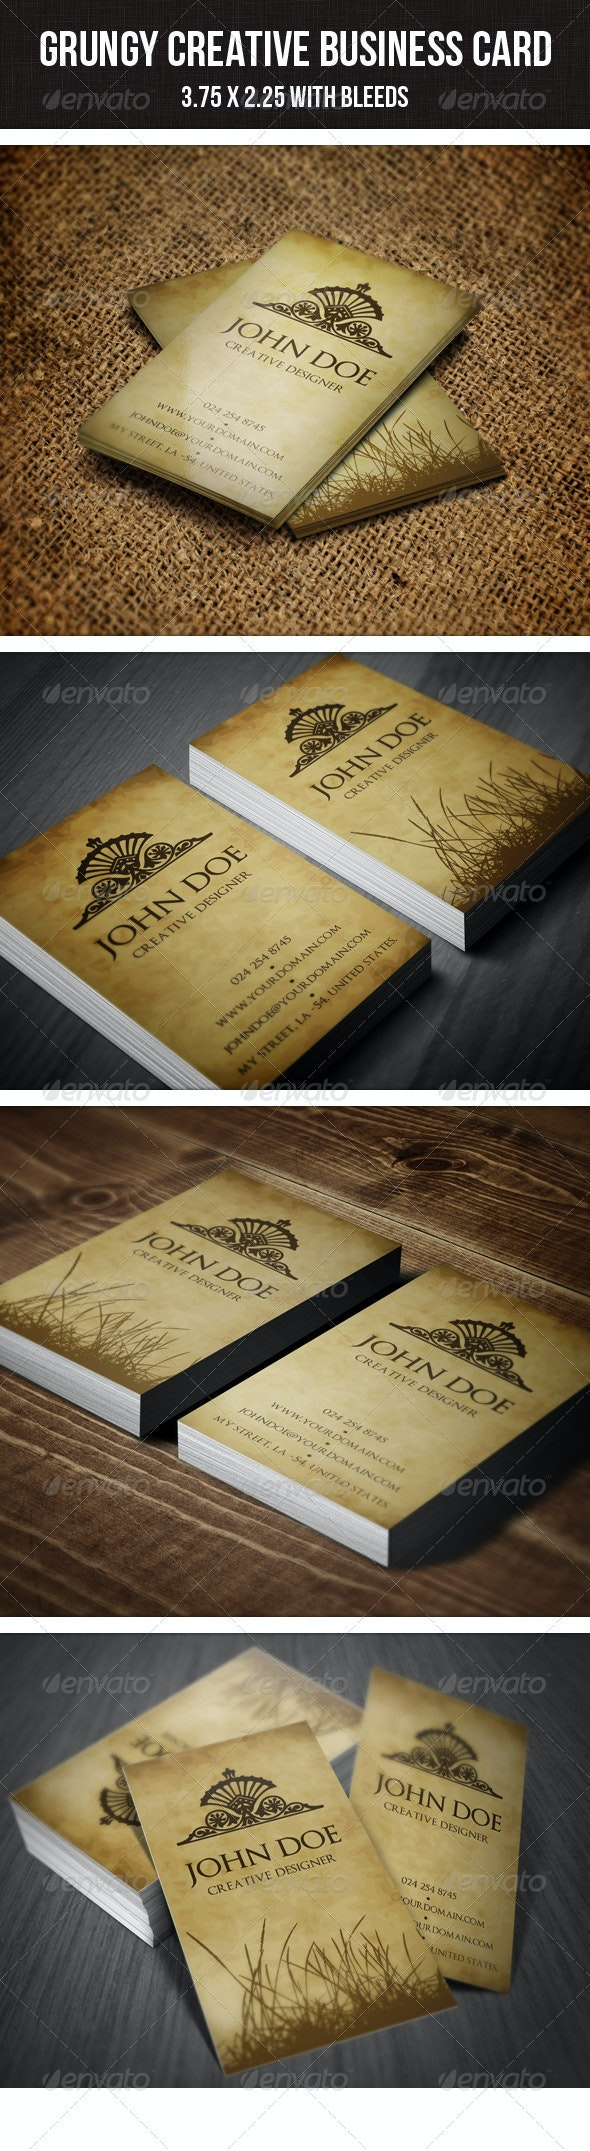 Grungy Minimal Business Card - Grunge Business Cards